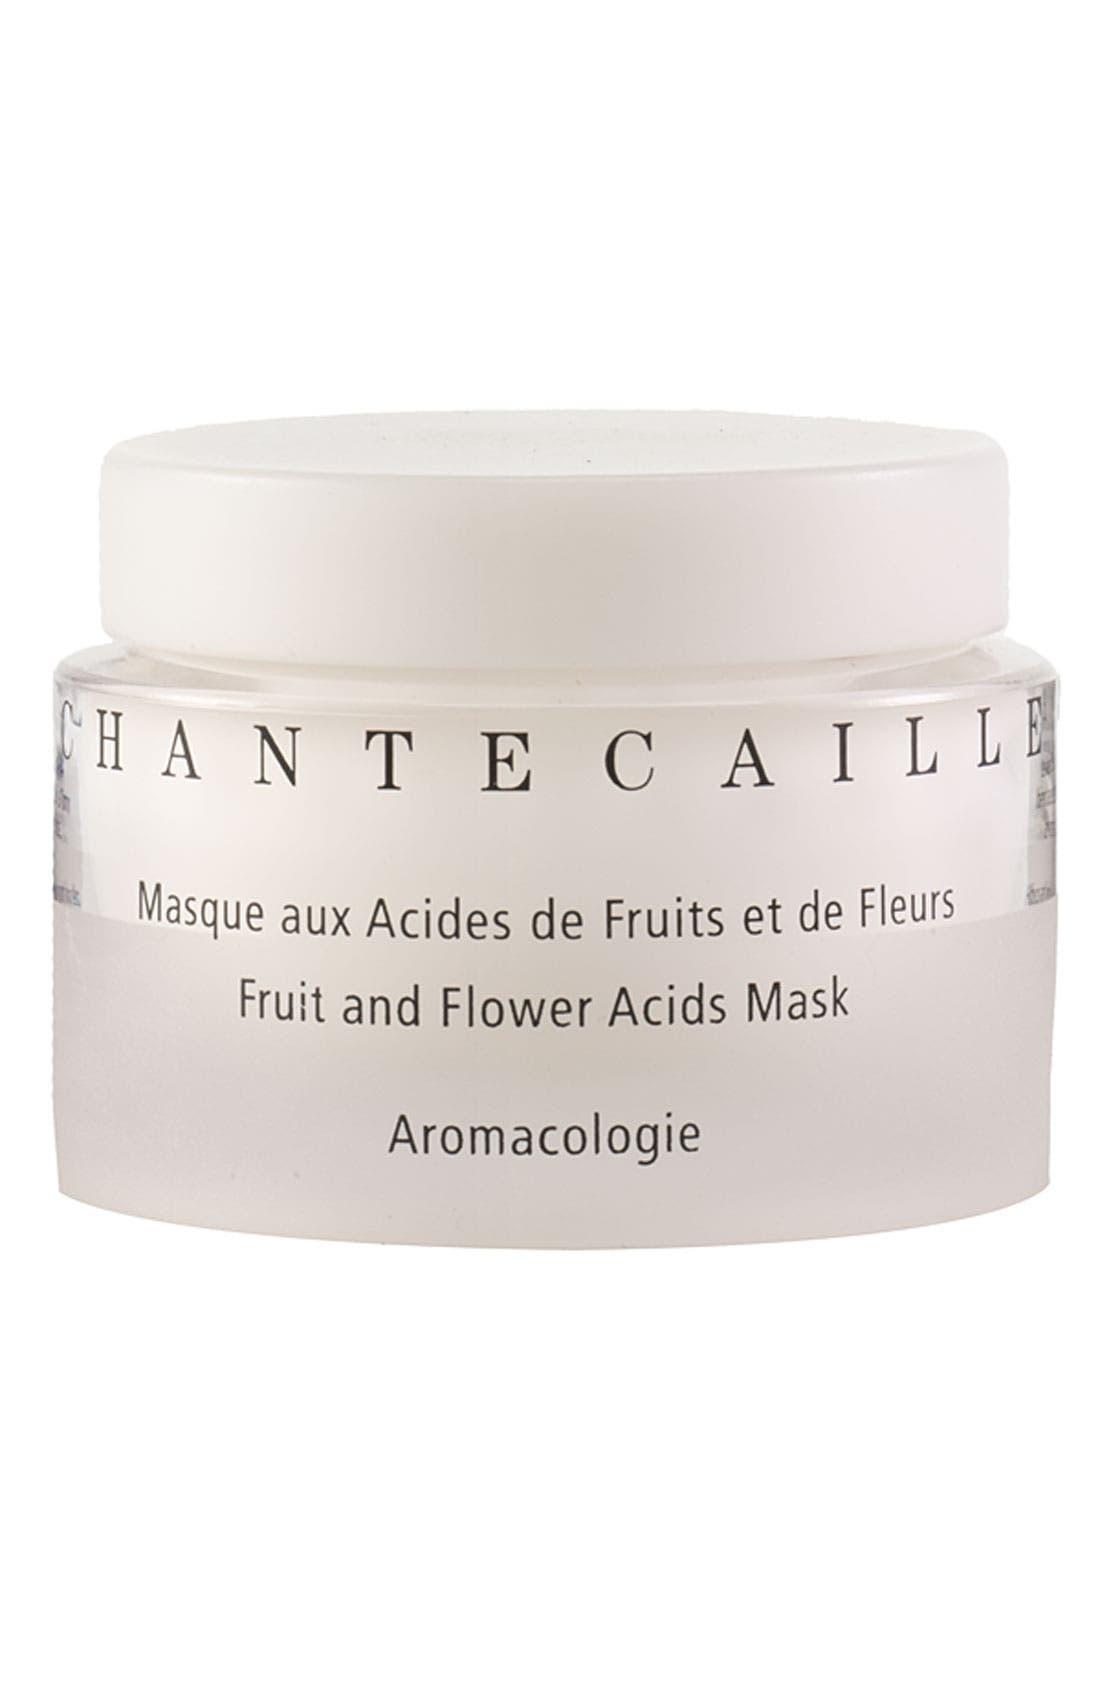 CHANTECAILLE,                             Fruit and Flower Acids Mask,                             Main thumbnail 1, color,                             000